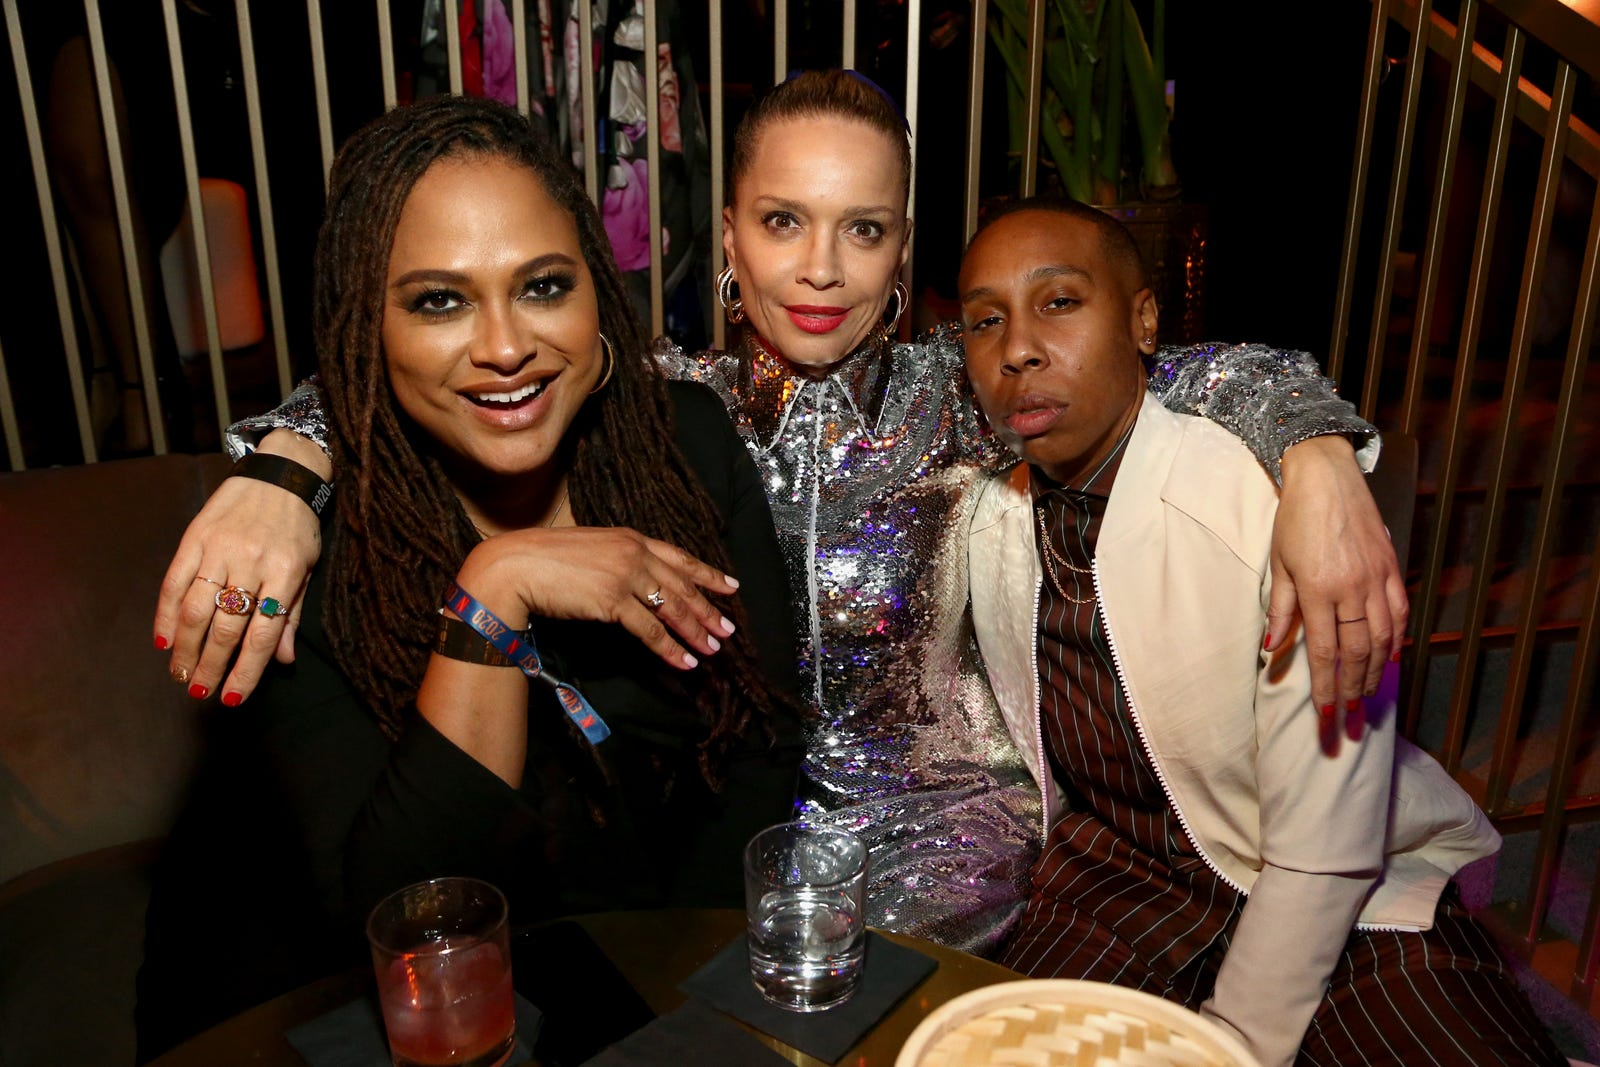 Ava DuVernay, Victoria Mahoney and Lena Waithe attend the Netflix 2020 Golden Globes After Party on January 05, 2020 in Los Angeles, Calif.